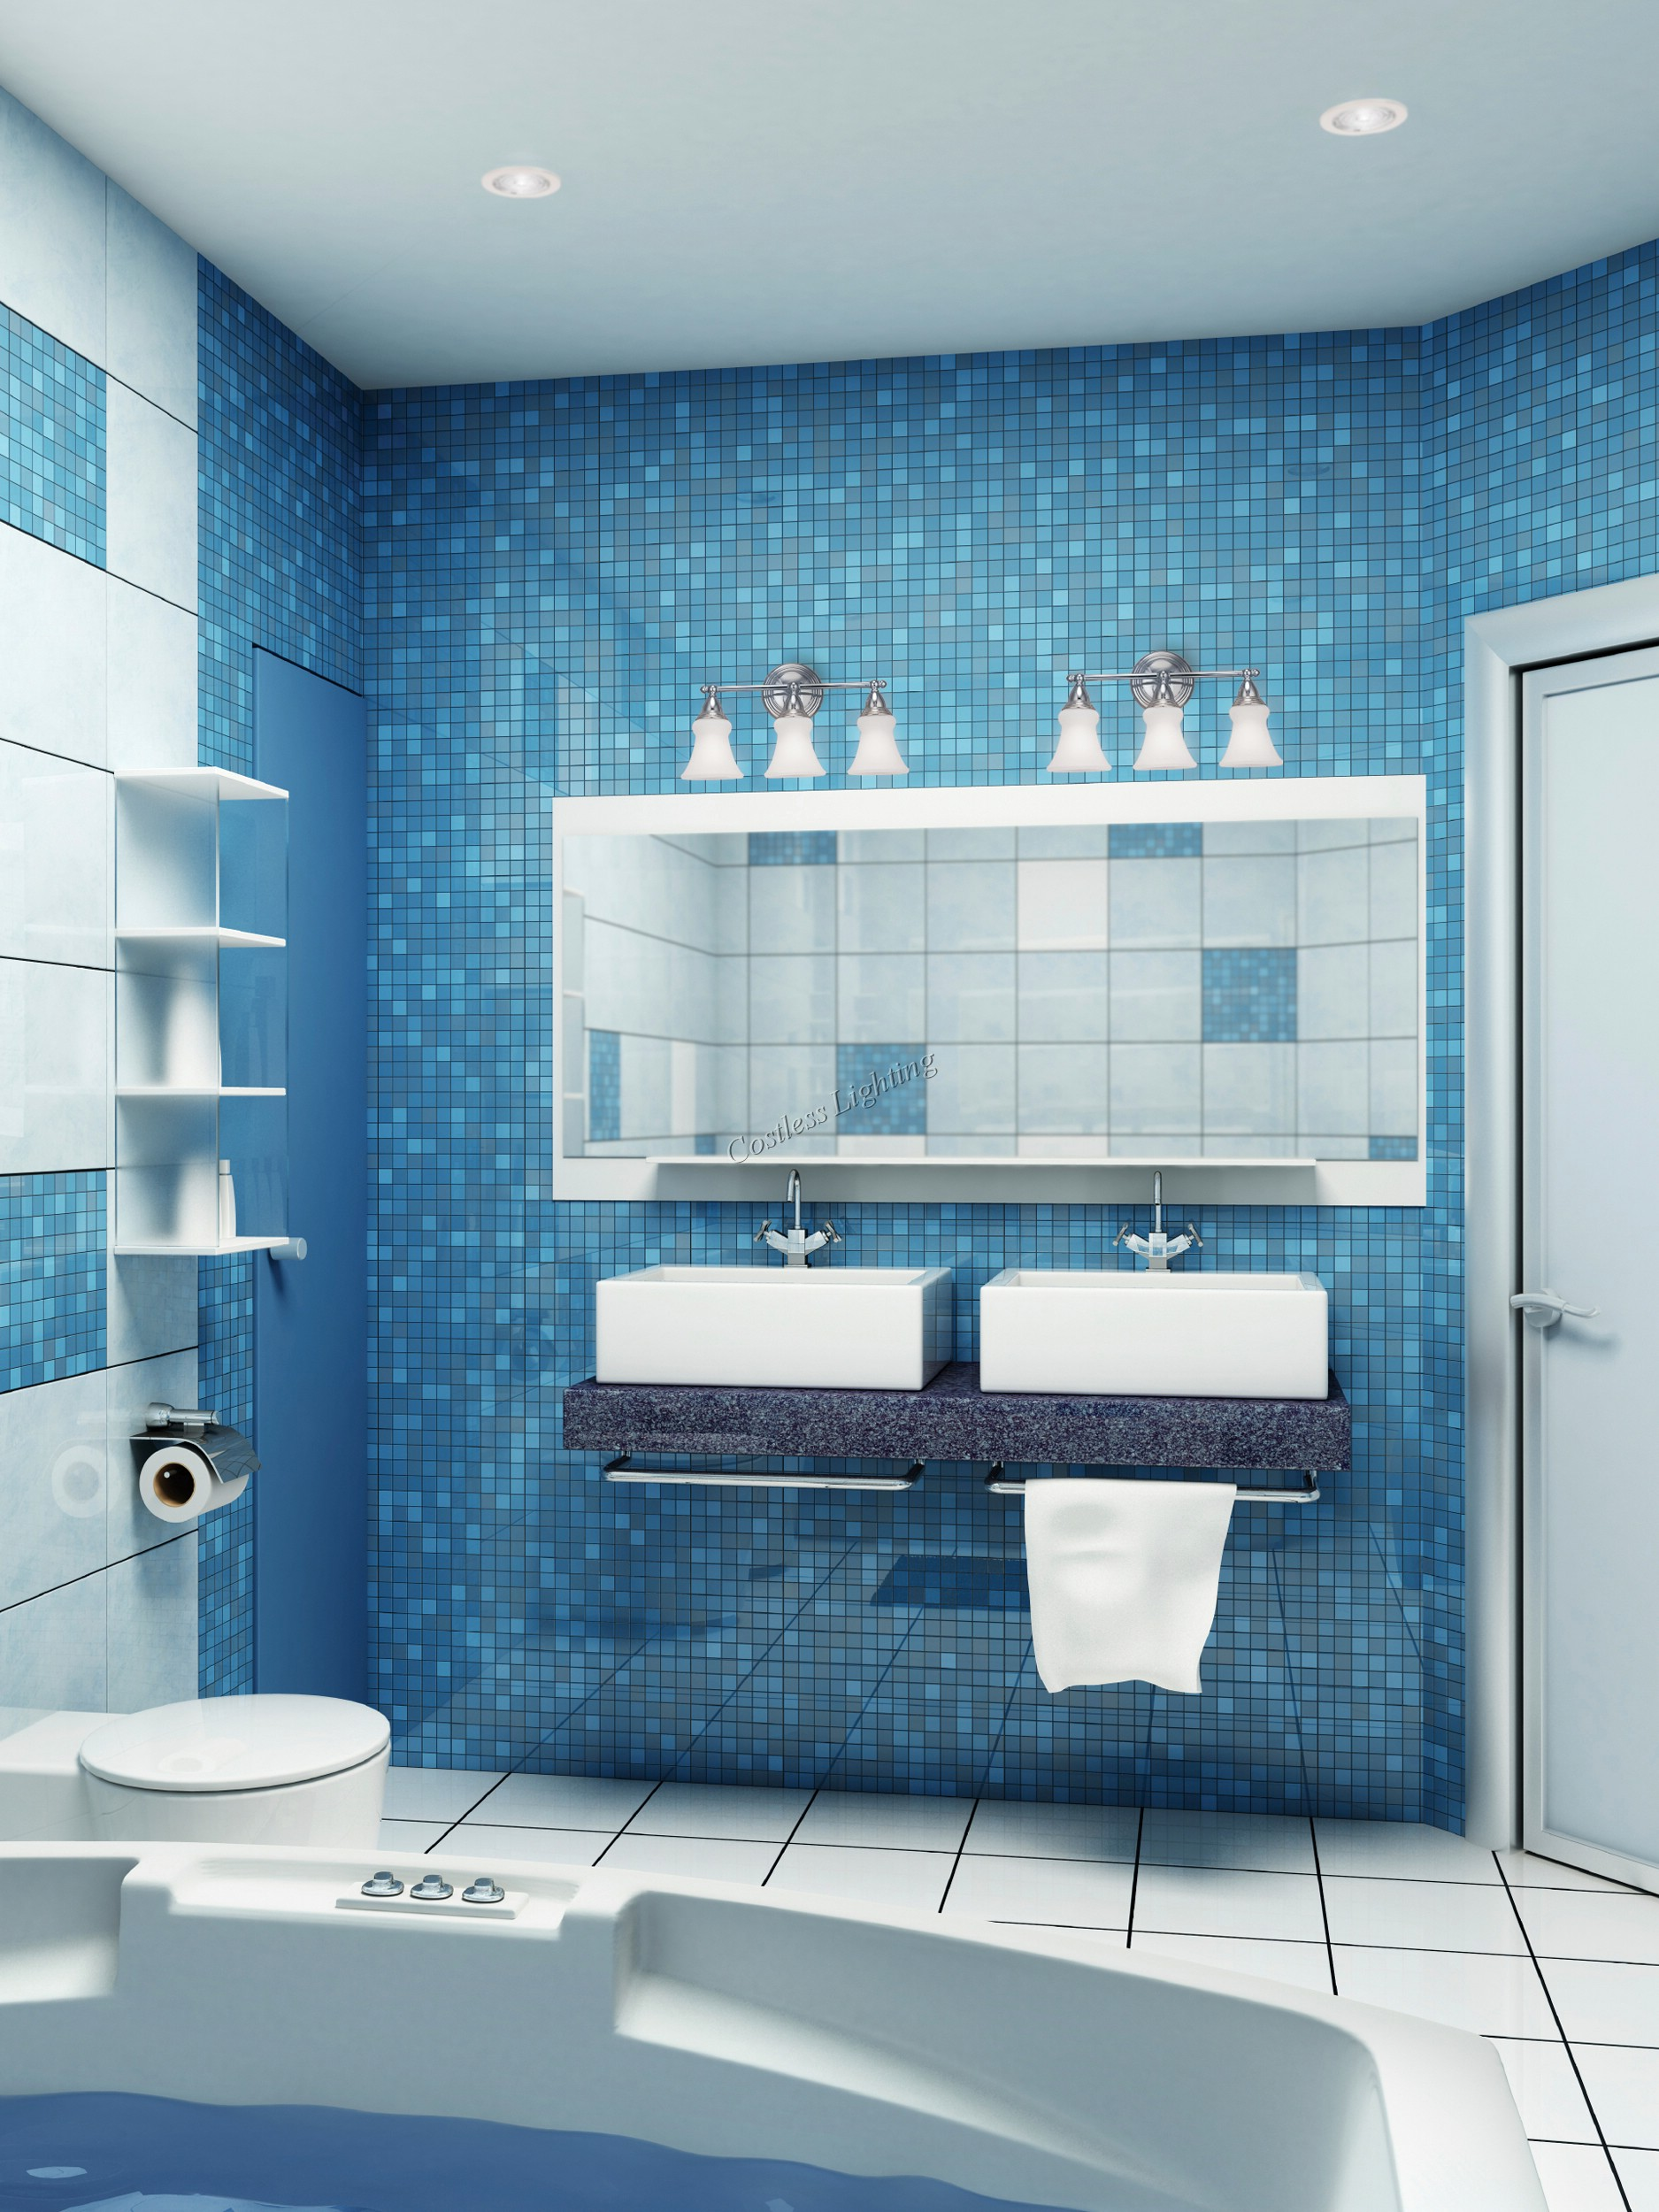 Index Of Imagesseagullapplications - Seagull bathroom lighting